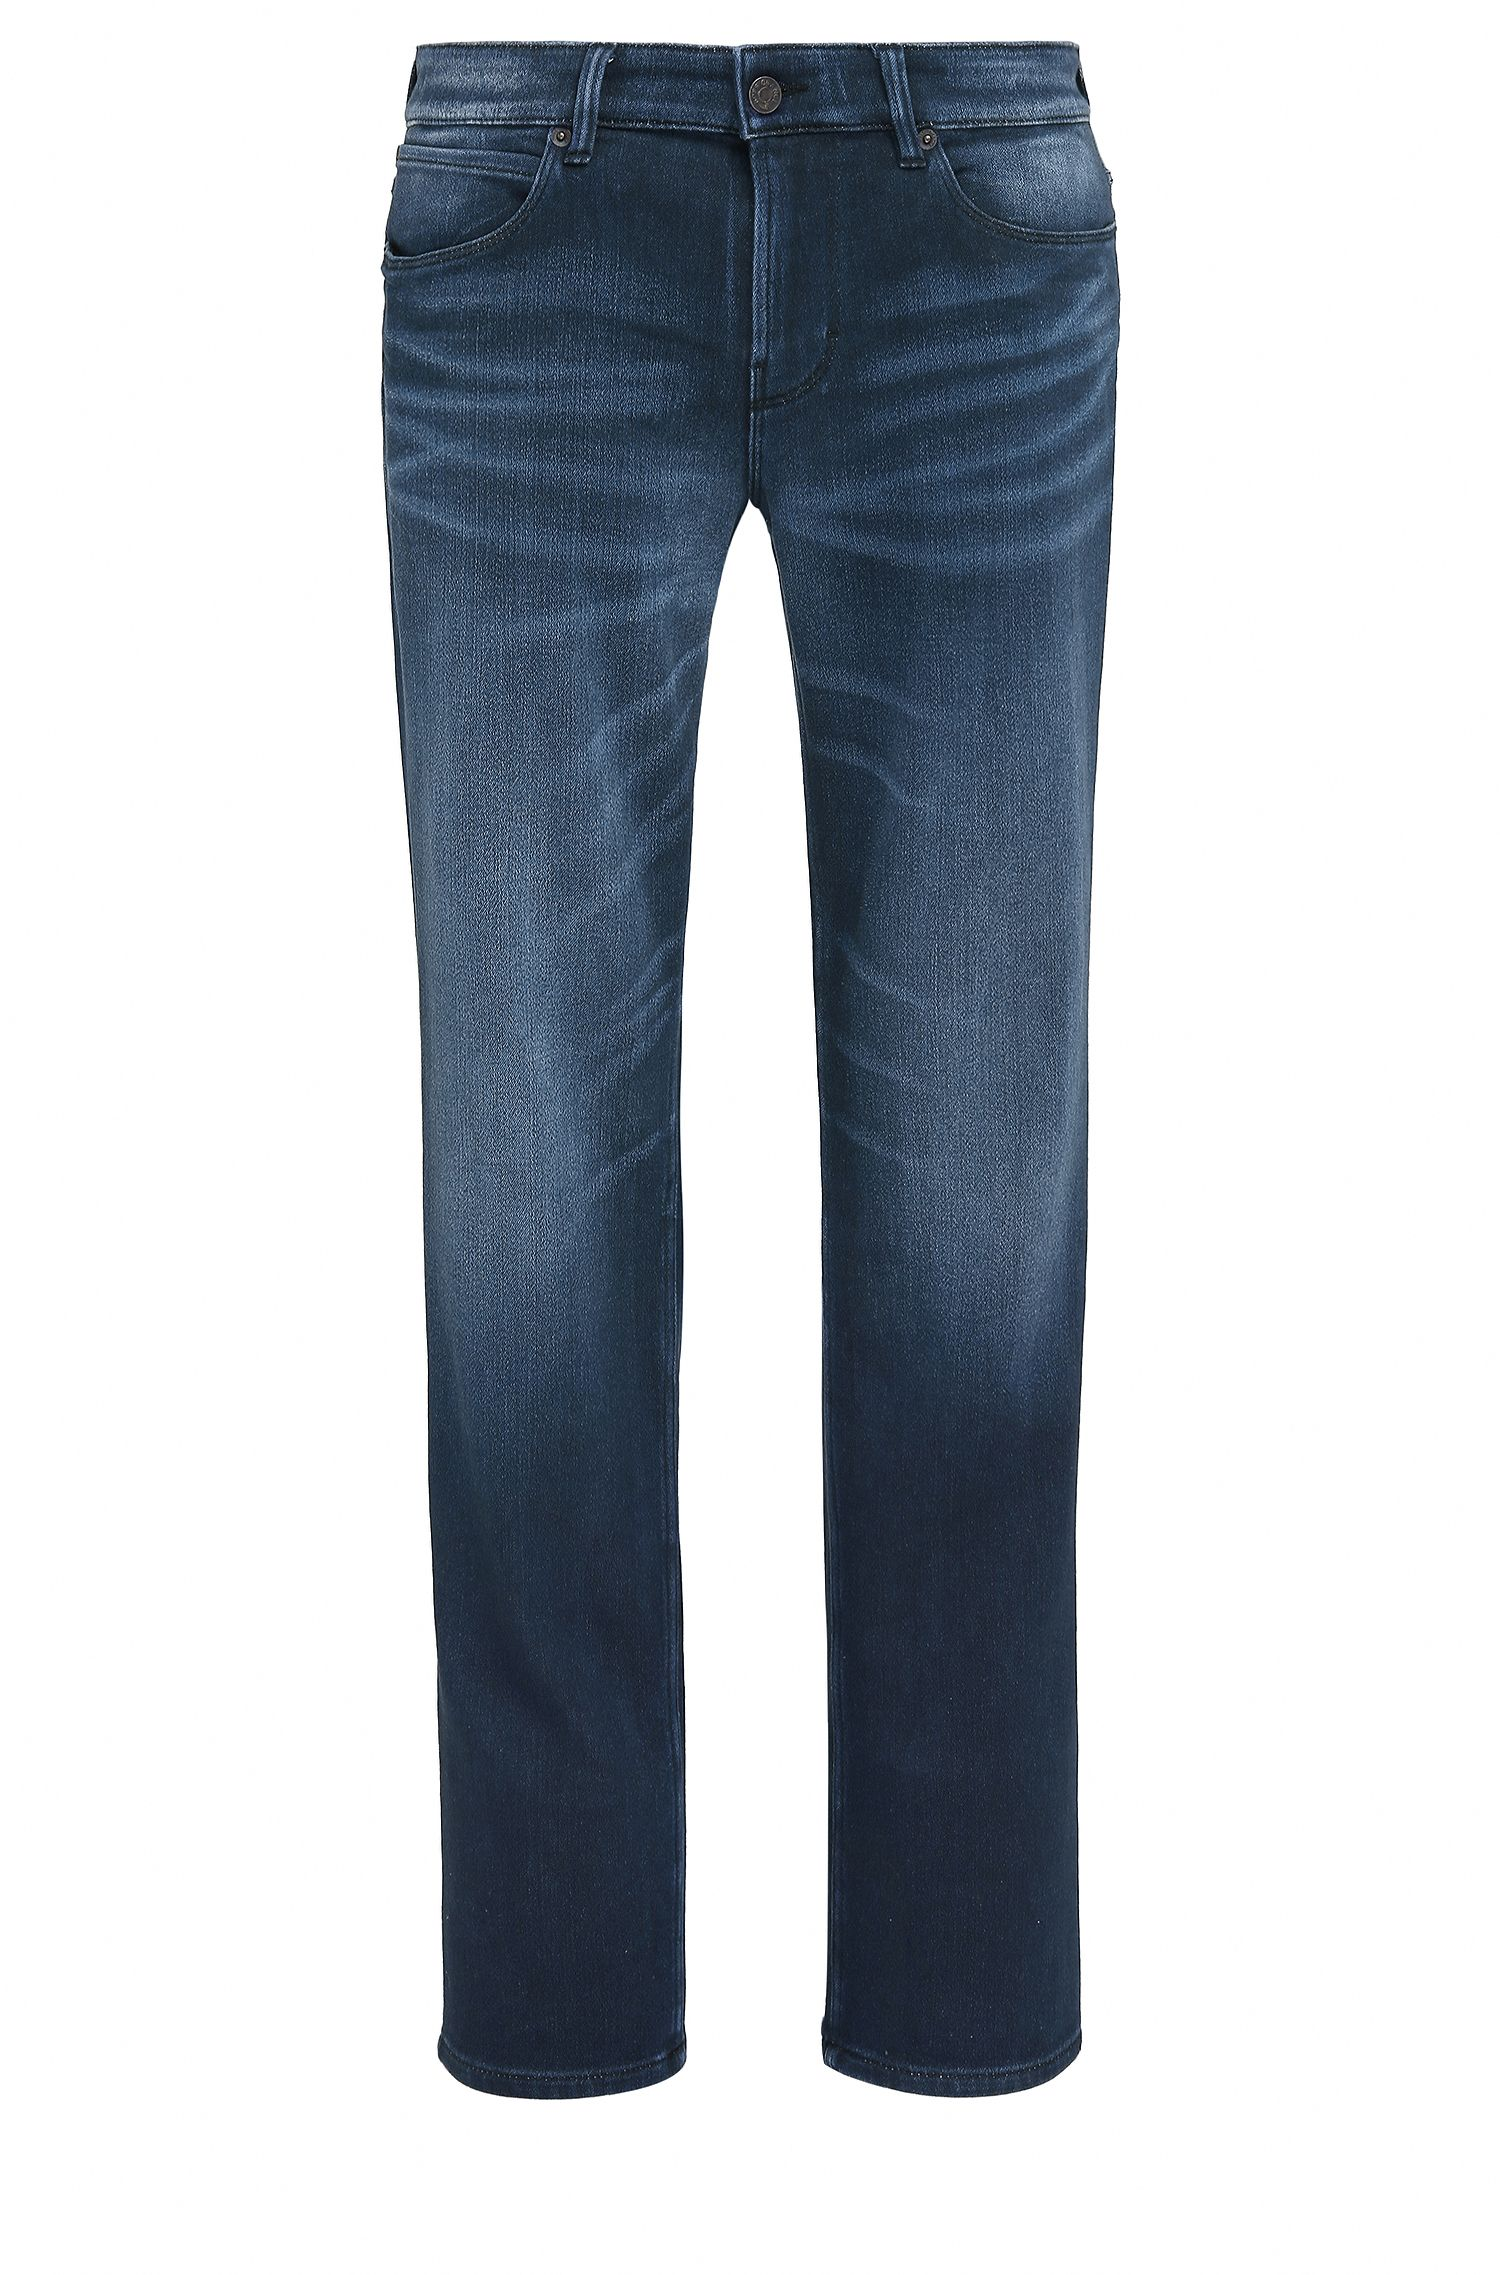 Jeans Slim Fit en denim italien